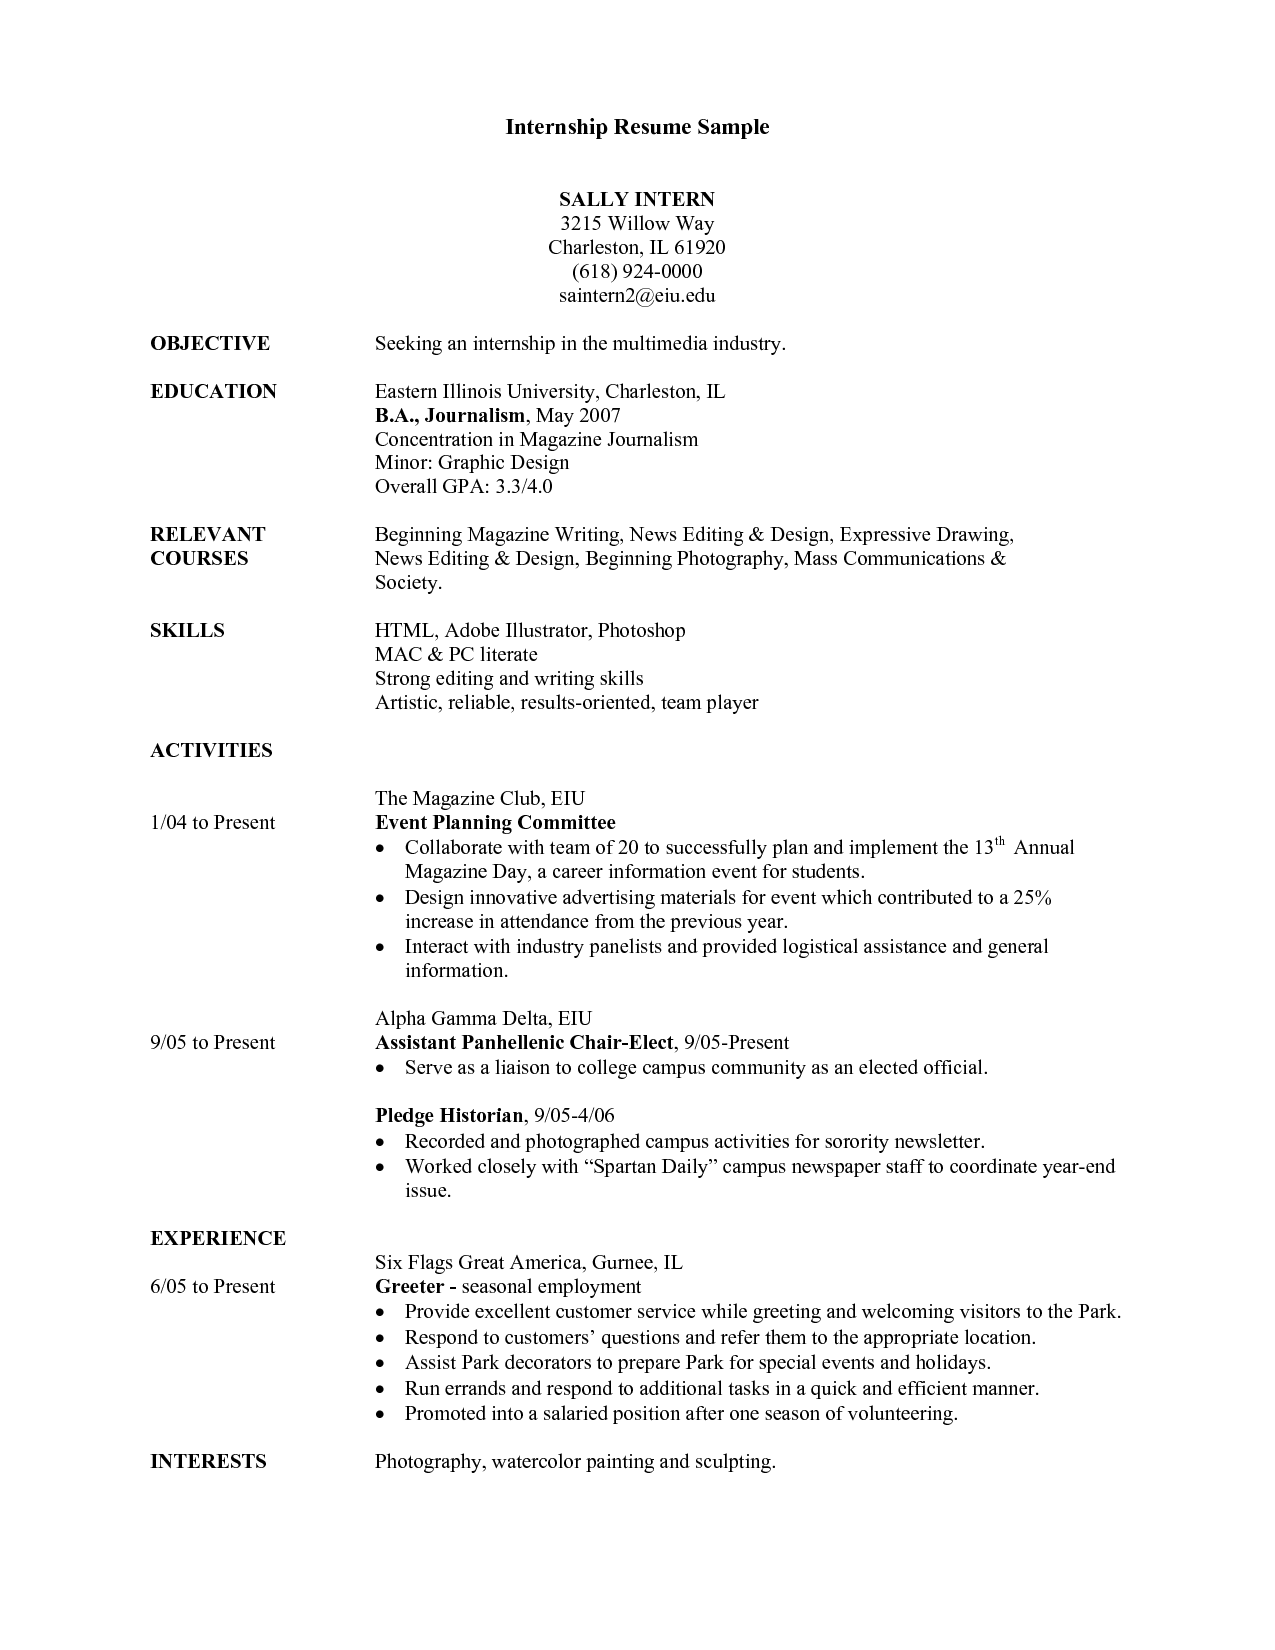 Undergraduate Student Resume Sample College Student Resume For Internship Task List Templates